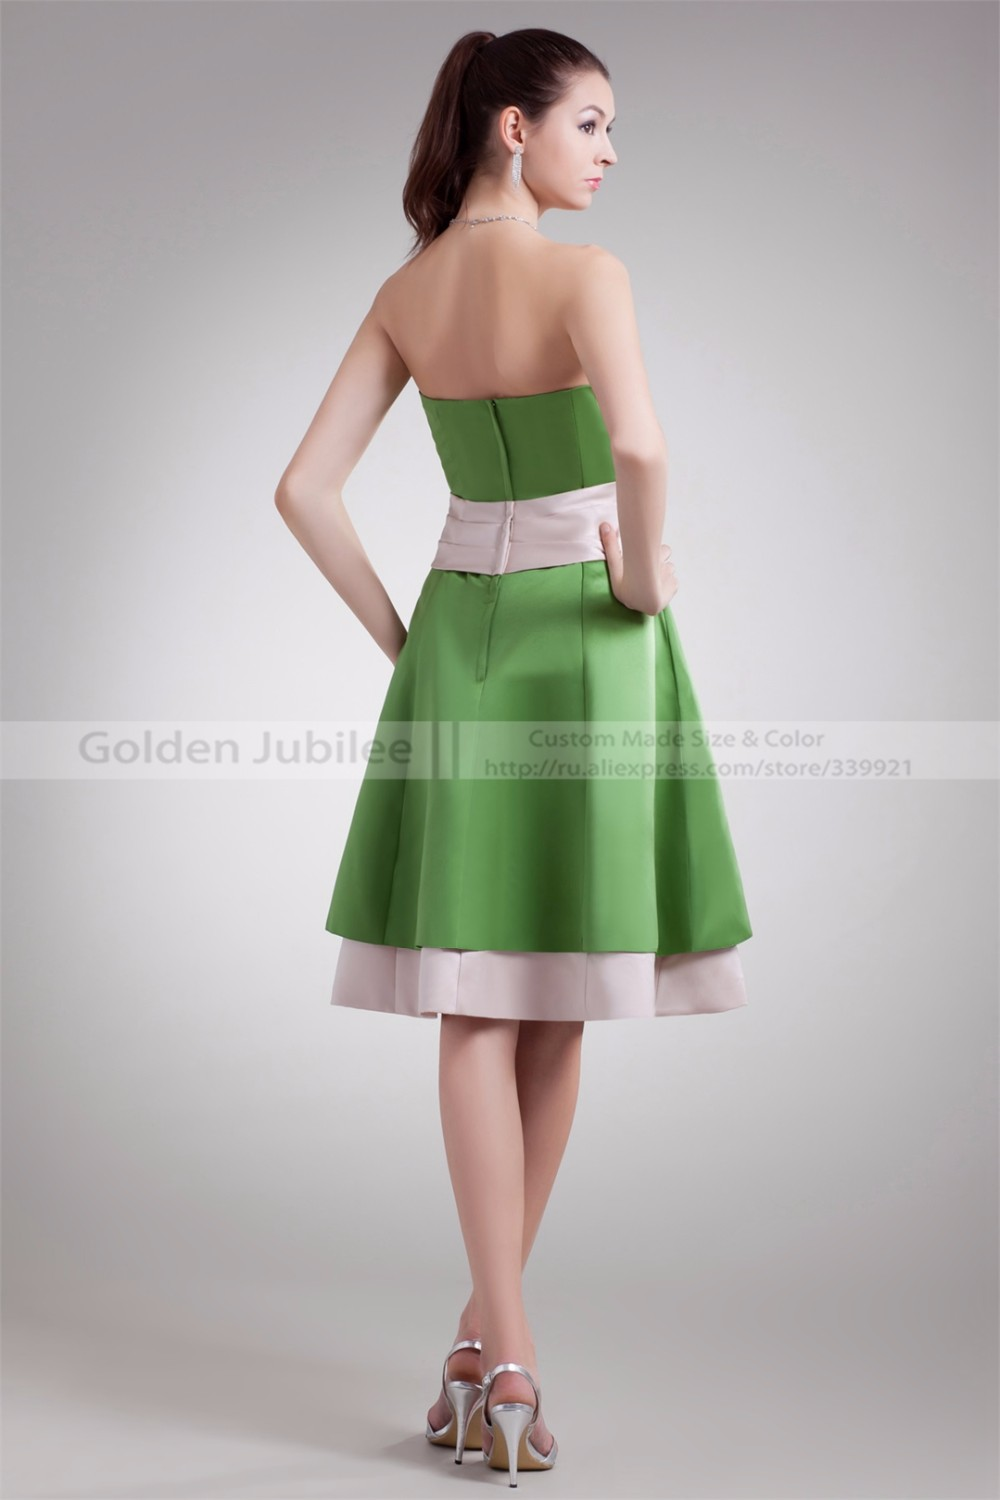 Satin-Strapless-Sleeveless-A-Line-Tiered-Special-Occasion-Dresses-23251-85272